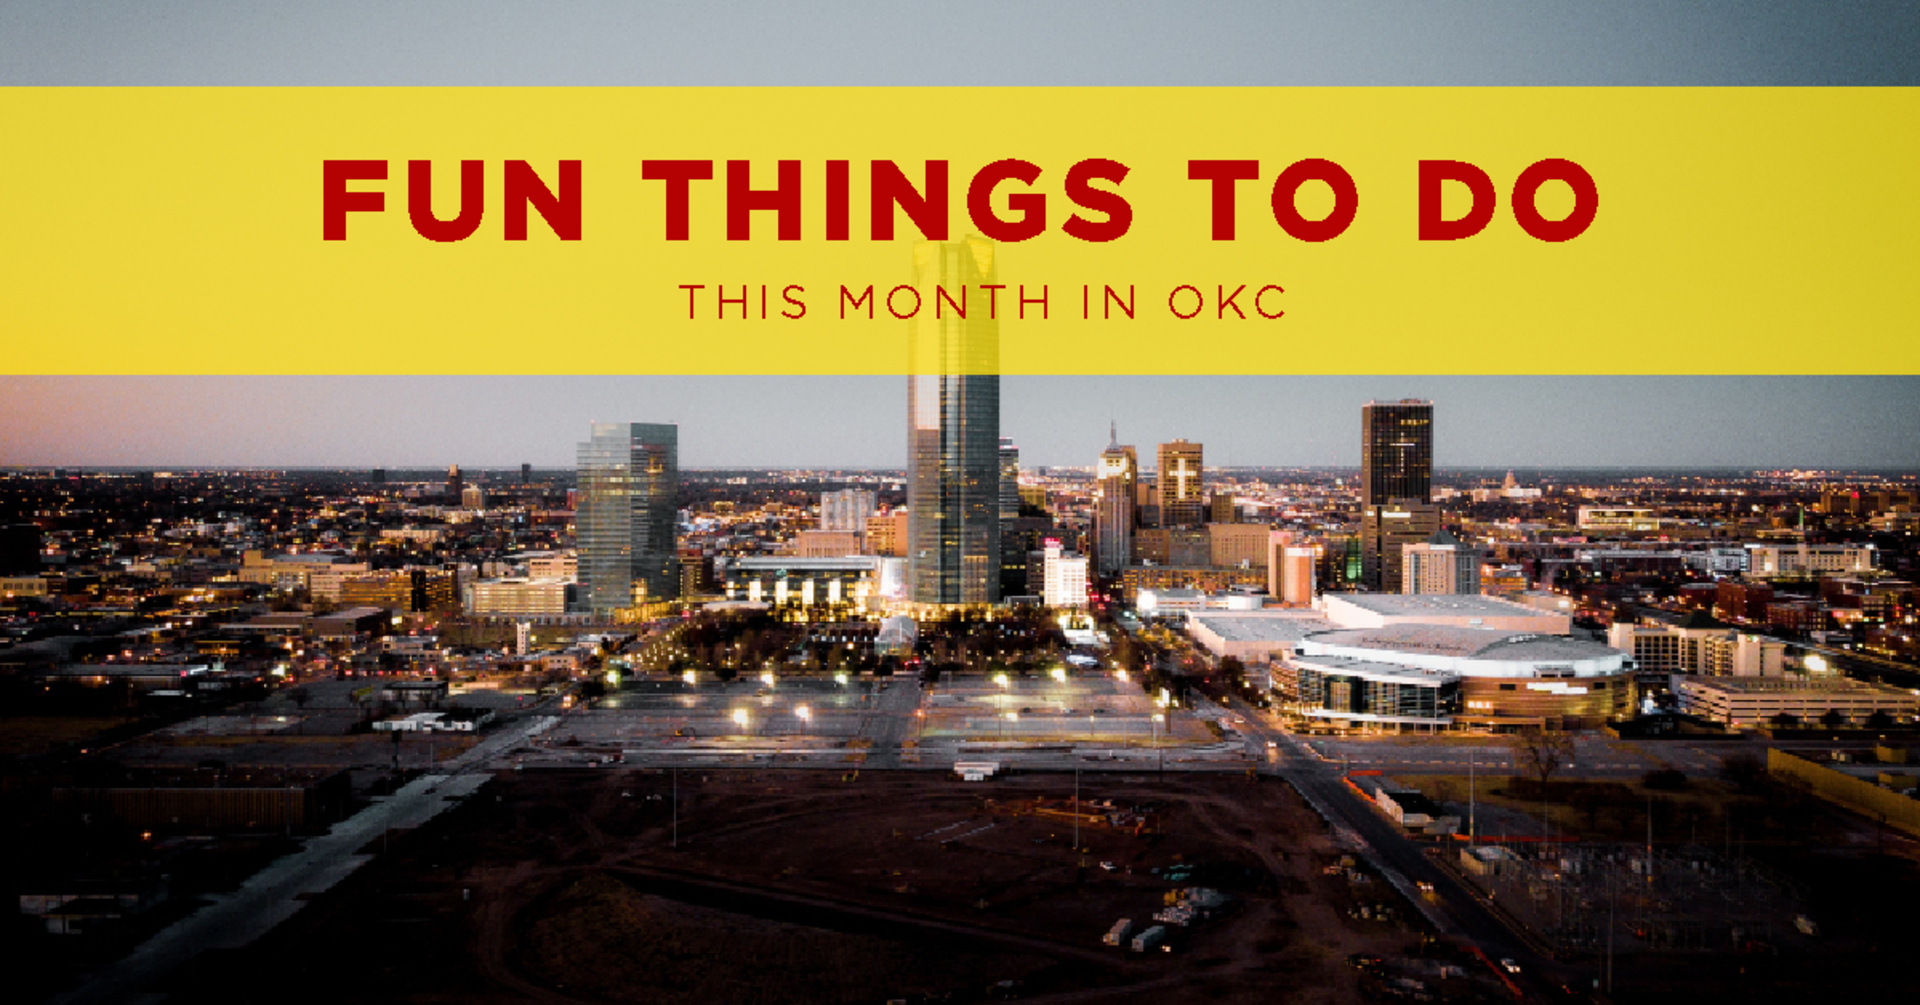 Fun Things To Do This Month In OKC